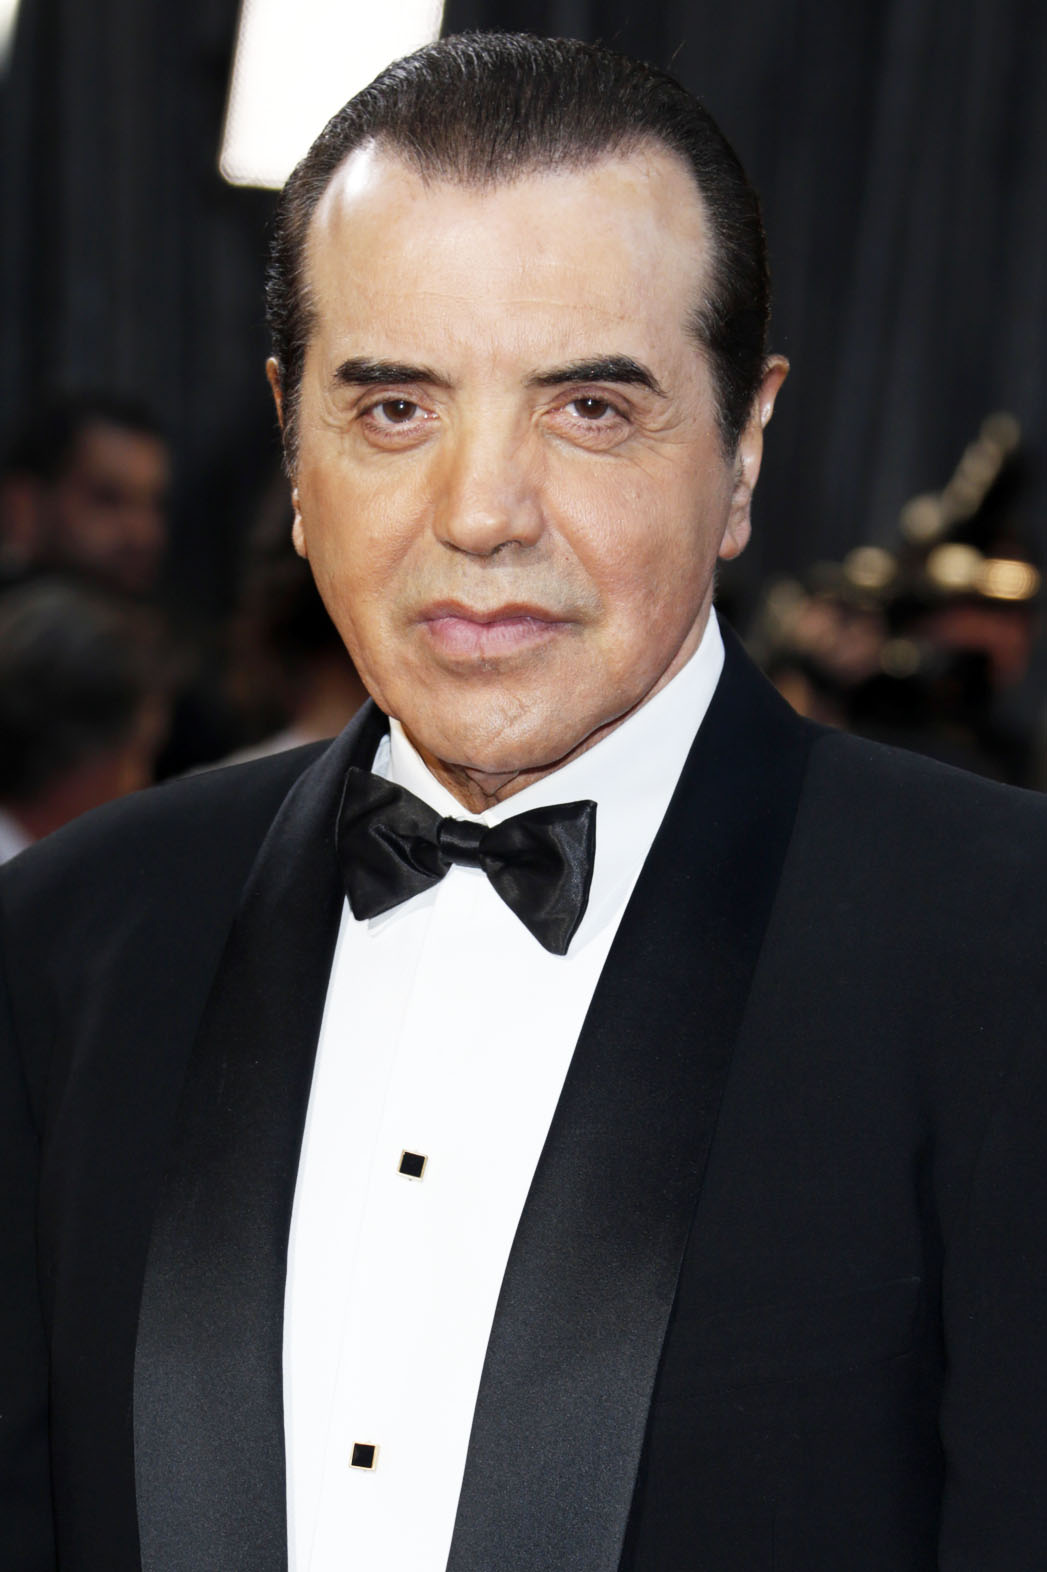 How tall is Chazz Palminteri?